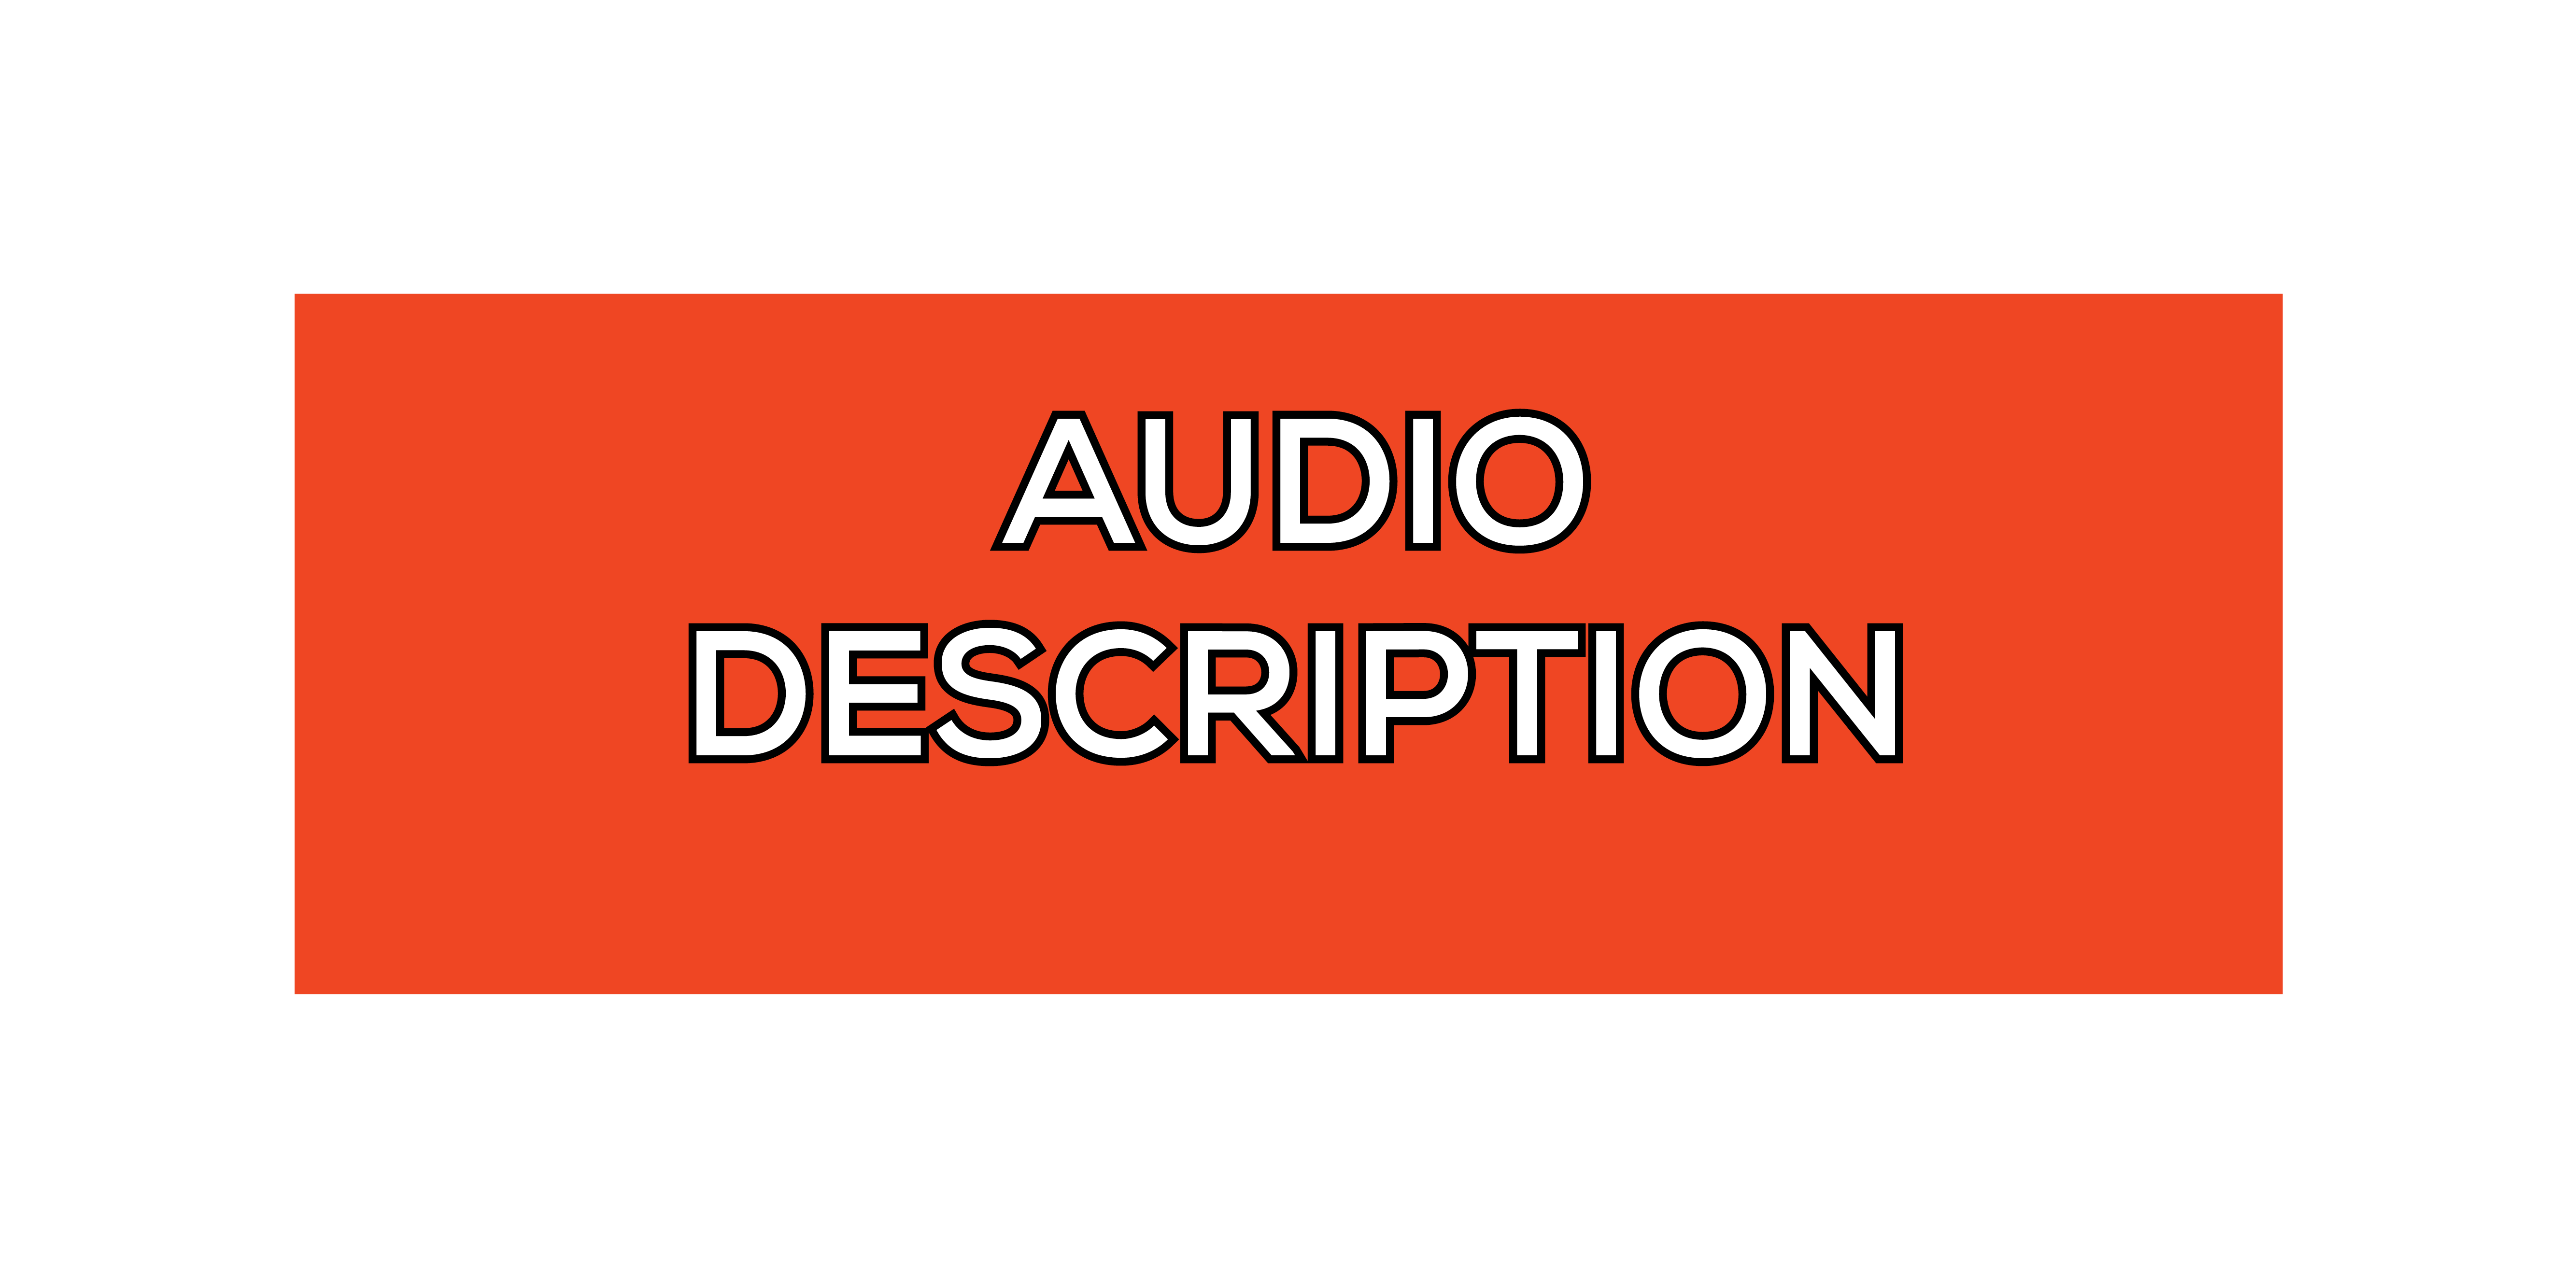 Click this button to view the event with Audio Description